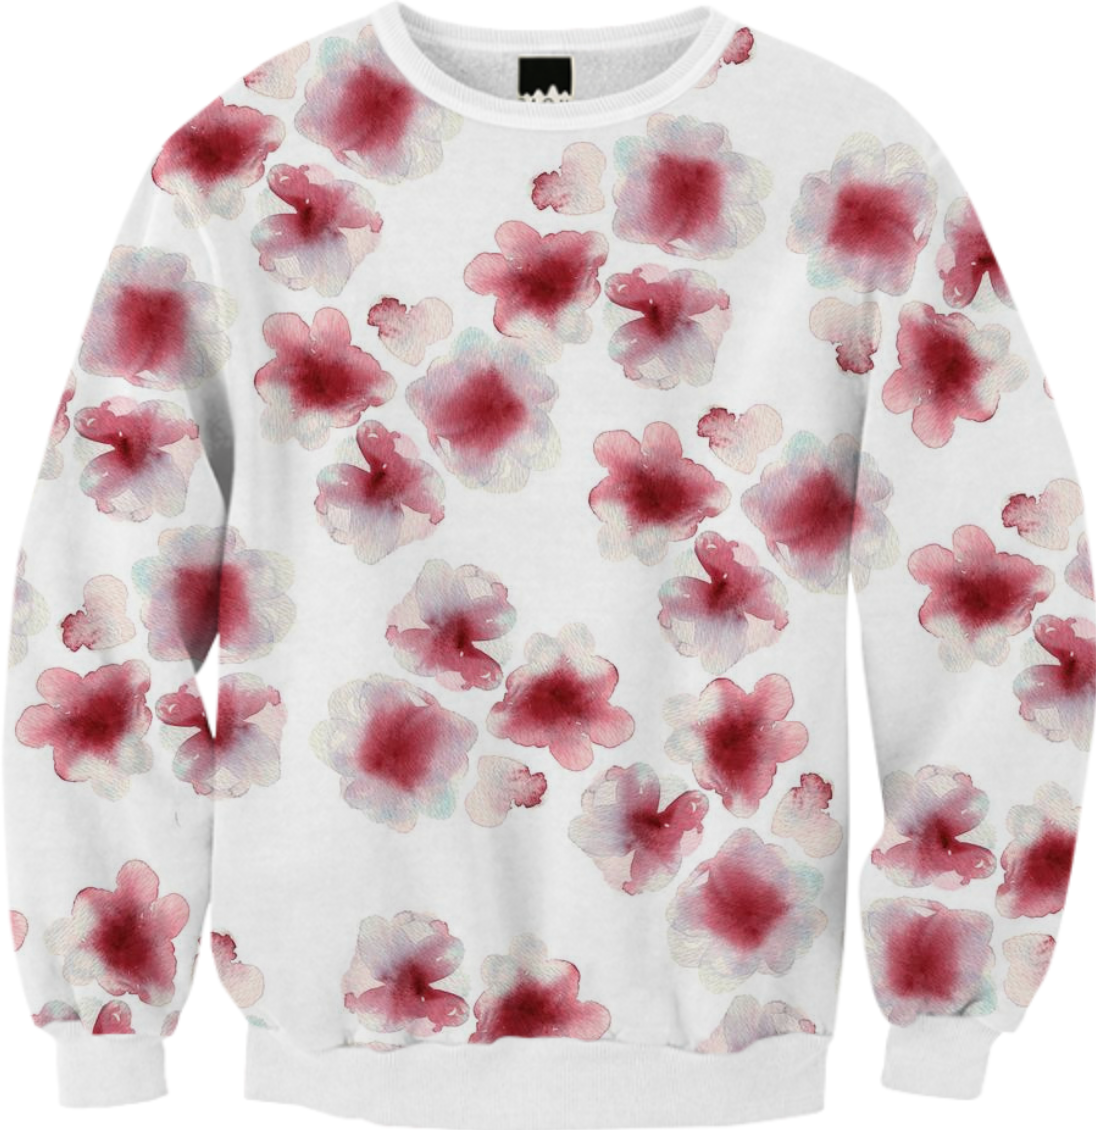 Blood flowers from Print All Over Me